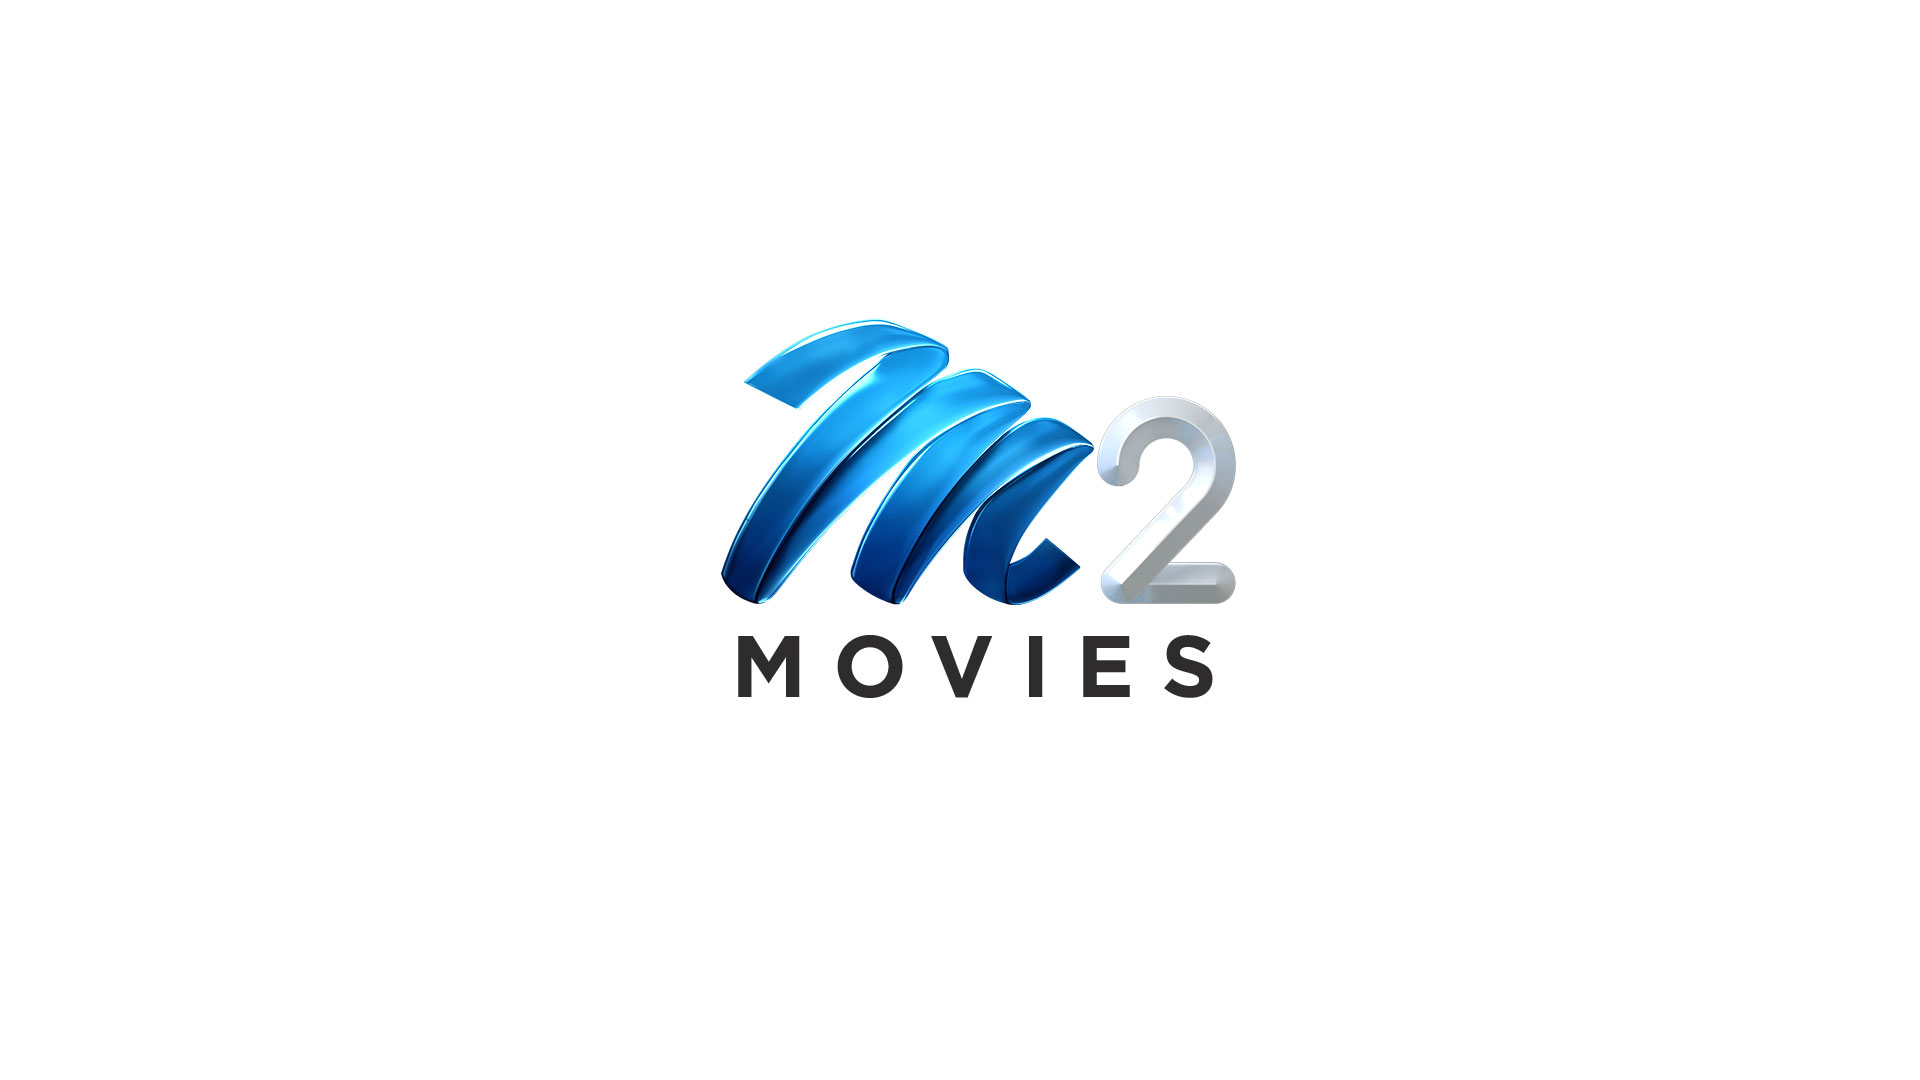 M-Net Movies 2 HD